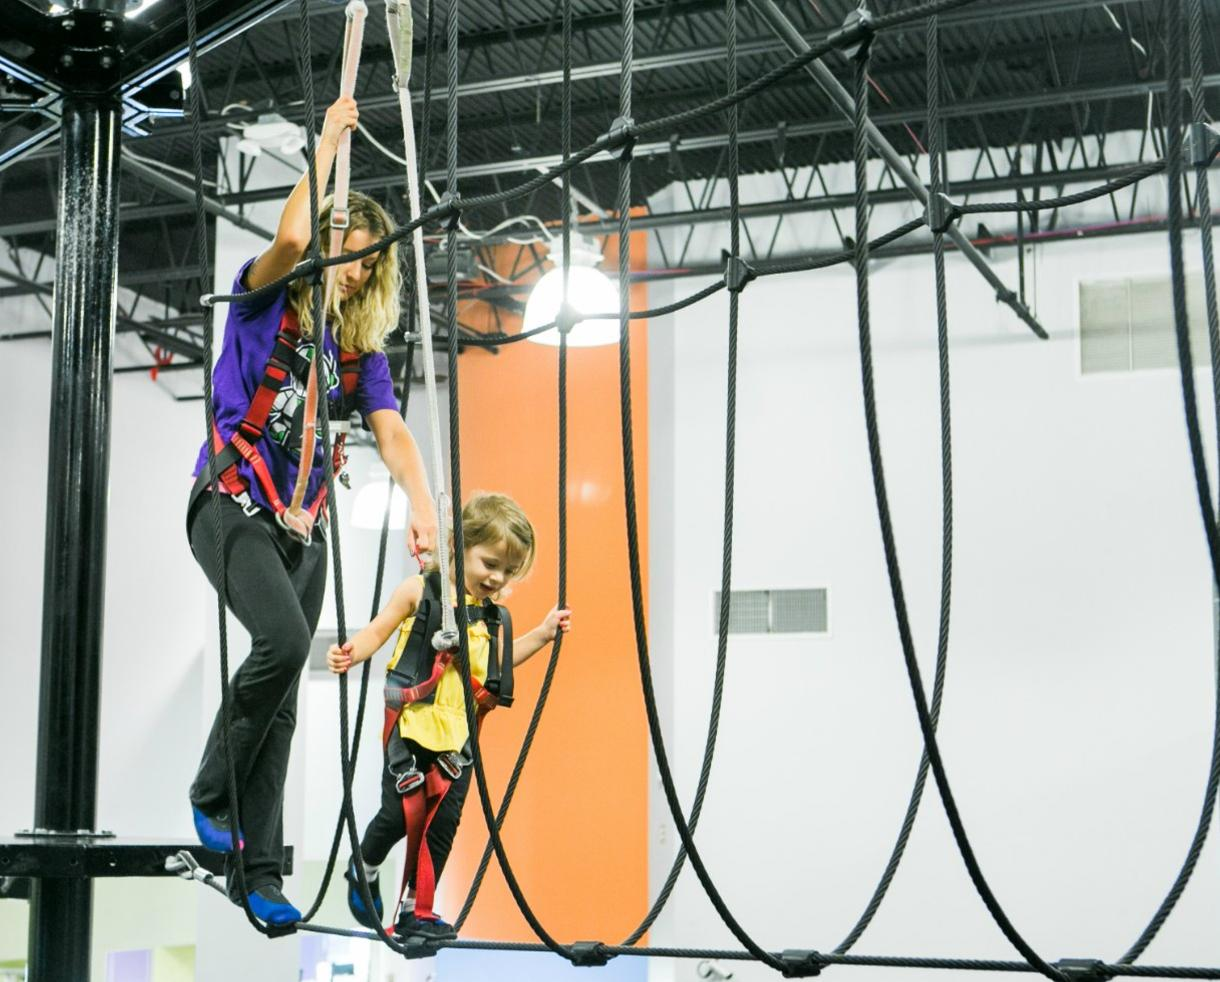 Two Funderdome Daily Admission Passes - Valid for Ages 6 mos - 2 yrs